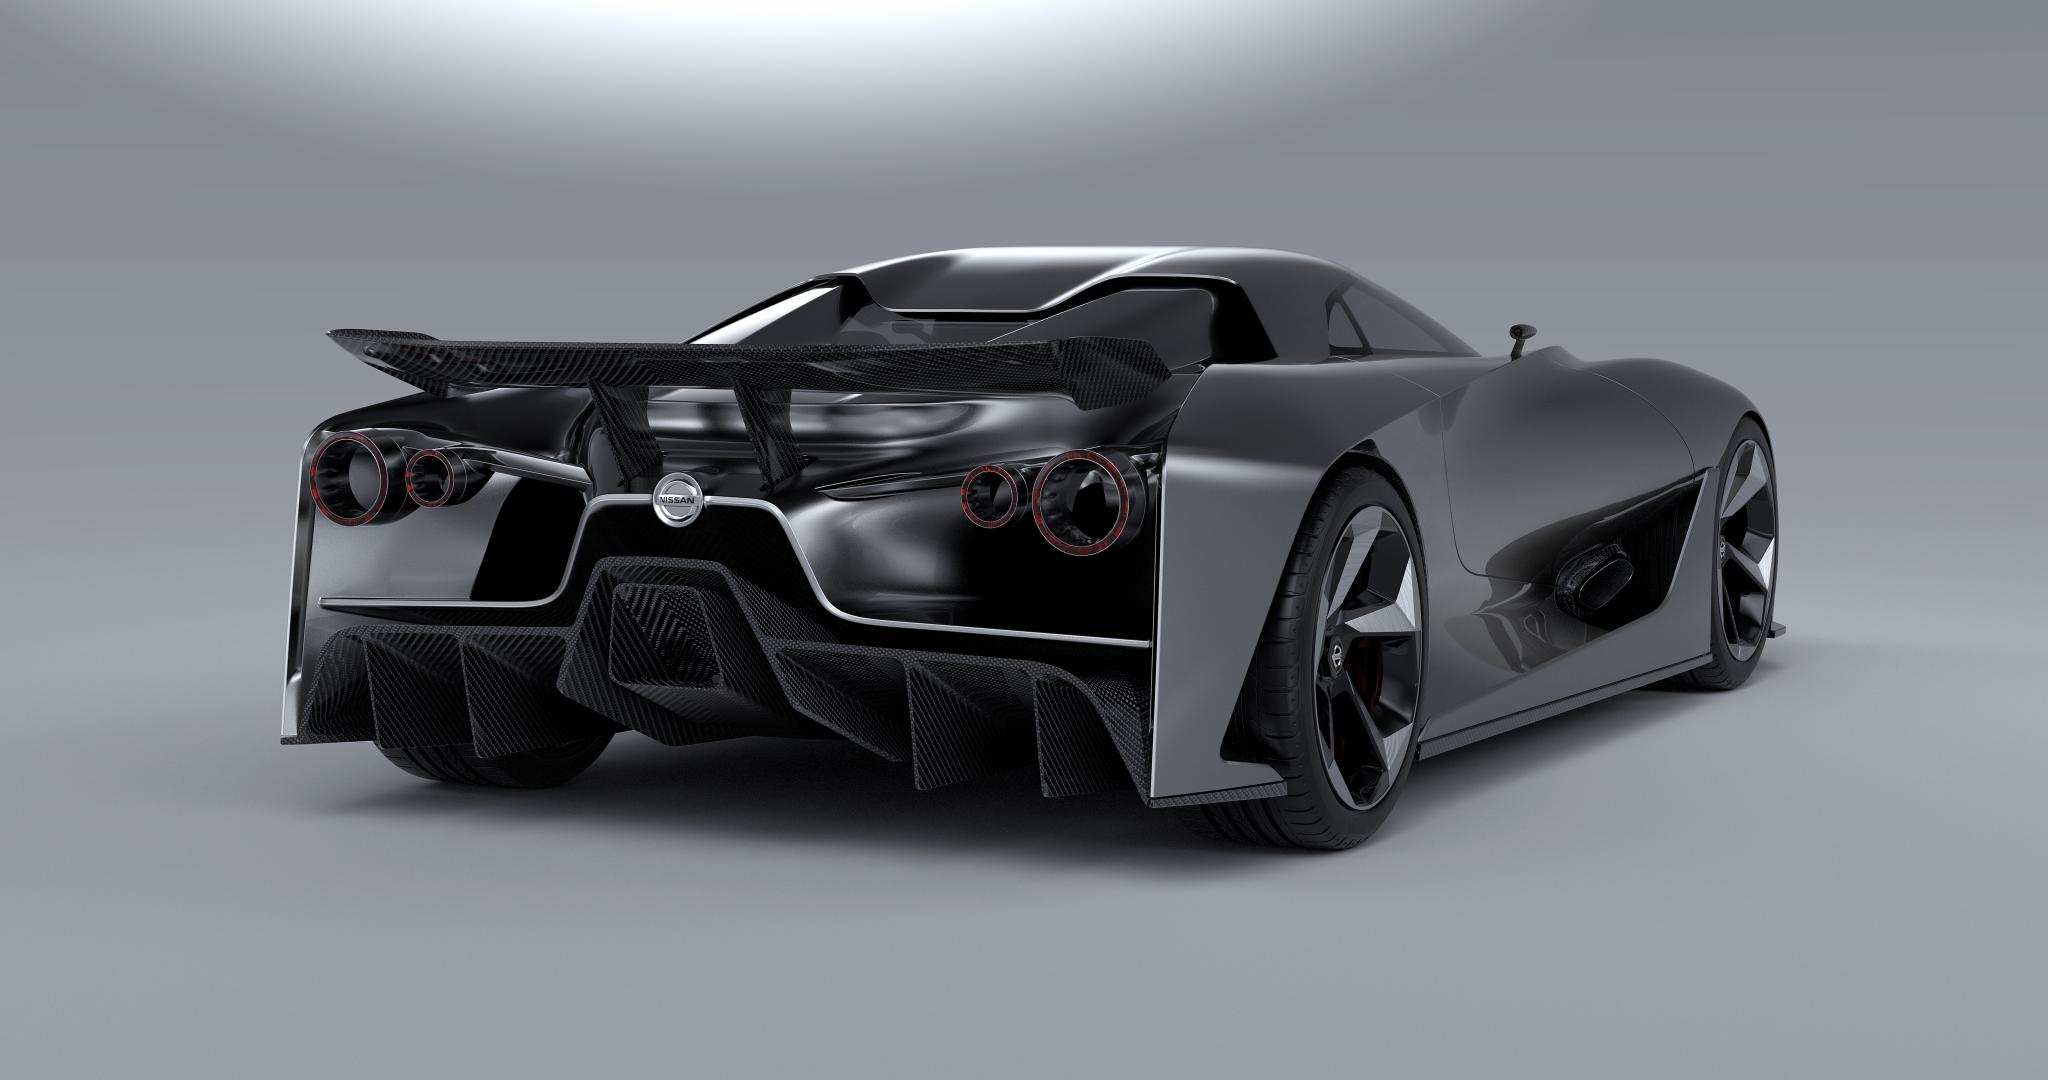 95 Concept of Nissan Gtr R36 2020 New Concept by Nissan Gtr R36 2020